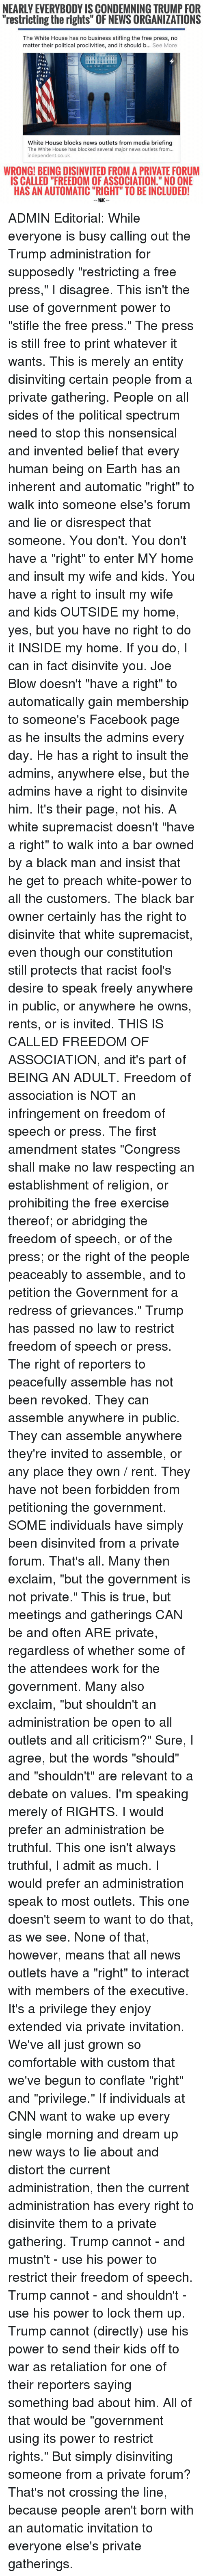 "Dank, Preach, and Insulting: NEARLY EVERYBODY IS CONDEMNINGTRUMP FOR  ""restricting the rights"" OF NEWS ORGANIZATIONS  The White House has no business stifling the free press, no  matter their political proclivities, and it should b  See More  WHITE HOUSE  THE White House blocks news outlets from media briefing  The White House has blocked several major news outlets from...  independent.co.uk  WRONG! BEING DISINVITED FROM A PRIVATE FORUM  IS CALLED ""FREEDOM OF ASSOCIATION."" NO ONE  HAS AN AUTOMATIC ""RIGHT TO BE INCLUDED!  WAC ADMIN Editorial:  While everyone is busy calling out the Trump administration for supposedly ""restricting a free press,"" I disagree. This isn't the use of government power to ""stifle the free press."" The press is still free to print whatever it wants. This is merely an entity disinviting certain people from a private gathering.   People on all sides of the political spectrum need to stop this nonsensical and invented belief that every human being on Earth has an inherent and automatic ""right"" to walk into someone else's forum and lie or disrespect that someone.  You don't.  You don't have a ""right"" to enter MY home and insult my wife and kids. You have a right to insult my wife and kids OUTSIDE my home, yes, but you have no right to do it INSIDE my home. If you do, I can in fact disinvite you. Joe Blow doesn't ""have a right"" to automatically gain membership to someone's Facebook page as he insults the admins every day. He has a right to insult the admins, anywhere else, but the admins have a right to disinvite him. It's their page, not his. A white supremacist doesn't ""have a right"" to walk into a bar owned by a black man and insist that he get to preach white-power to all the customers. The black bar owner certainly has the right to disinvite that white supremacist, even though our constitution still protects that racist fool's desire to speak freely anywhere in public, or anywhere he owns, rents, or is invited.   THIS IS CALLED FREEDOM OF ASSOCIATION, and it's part of BEING AN ADULT.   Freedom of association is NOT an infringement on freedom of speech or press. The first amendment states ""Congress shall make no law respecting an establishment of religion, or prohibiting the free exercise thereof; or abridging the freedom of speech, or of the press; or the right of the people peaceably to assemble, and to petition the Government for a redress of grievances.""  Trump has passed no law to restrict freedom of speech or press. The right of reporters to peacefully assemble has not been revoked. They can assemble anywhere in public. They can assemble anywhere they're invited to assemble, or any place they own / rent. They have not been forbidden from petitioning the government. SOME individuals have simply been disinvited from a private forum. That's all.   Many then exclaim, ""but the government is not private.""  This is true, but meetings and gatherings CAN be and often ARE private, regardless of whether some of the attendees work for the government.   Many also exclaim, ""but shouldn't an administration be open to all outlets and all criticism?"" Sure, I agree, but the words ""should"" and ""shouldn't"" are relevant to a debate on values. I'm speaking merely of RIGHTS. I would prefer an administration be truthful. This one isn't always truthful, I admit as much. I would prefer an administration speak to most outlets. This one doesn't seem to want to do that, as we see. None of that, however, means that all news outlets have a ""right"" to interact with members of the executive. It's a privilege they enjoy extended via private invitation. We've all just grown so comfortable with custom that we've begun to conflate ""right"" and ""privilege.""  If individuals at CNN want to wake up every single morning and dream up new ways to lie about and distort the current administration, then the current administration has every right to disinvite them to a private gathering. Trump cannot - and mustn't - use his power to restrict their freedom of speech. Trump cannot - and shouldn't - use his power to lock them up. Trump cannot (directly) use his power to send their kids off to war as retaliation for one of their reporters saying something bad about him. All of that would be ""government using its power to restrict rights."" But simply disinviting someone from a private forum? That's not crossing the line, because people aren't born with an automatic invitation to everyone else's private gatherings."